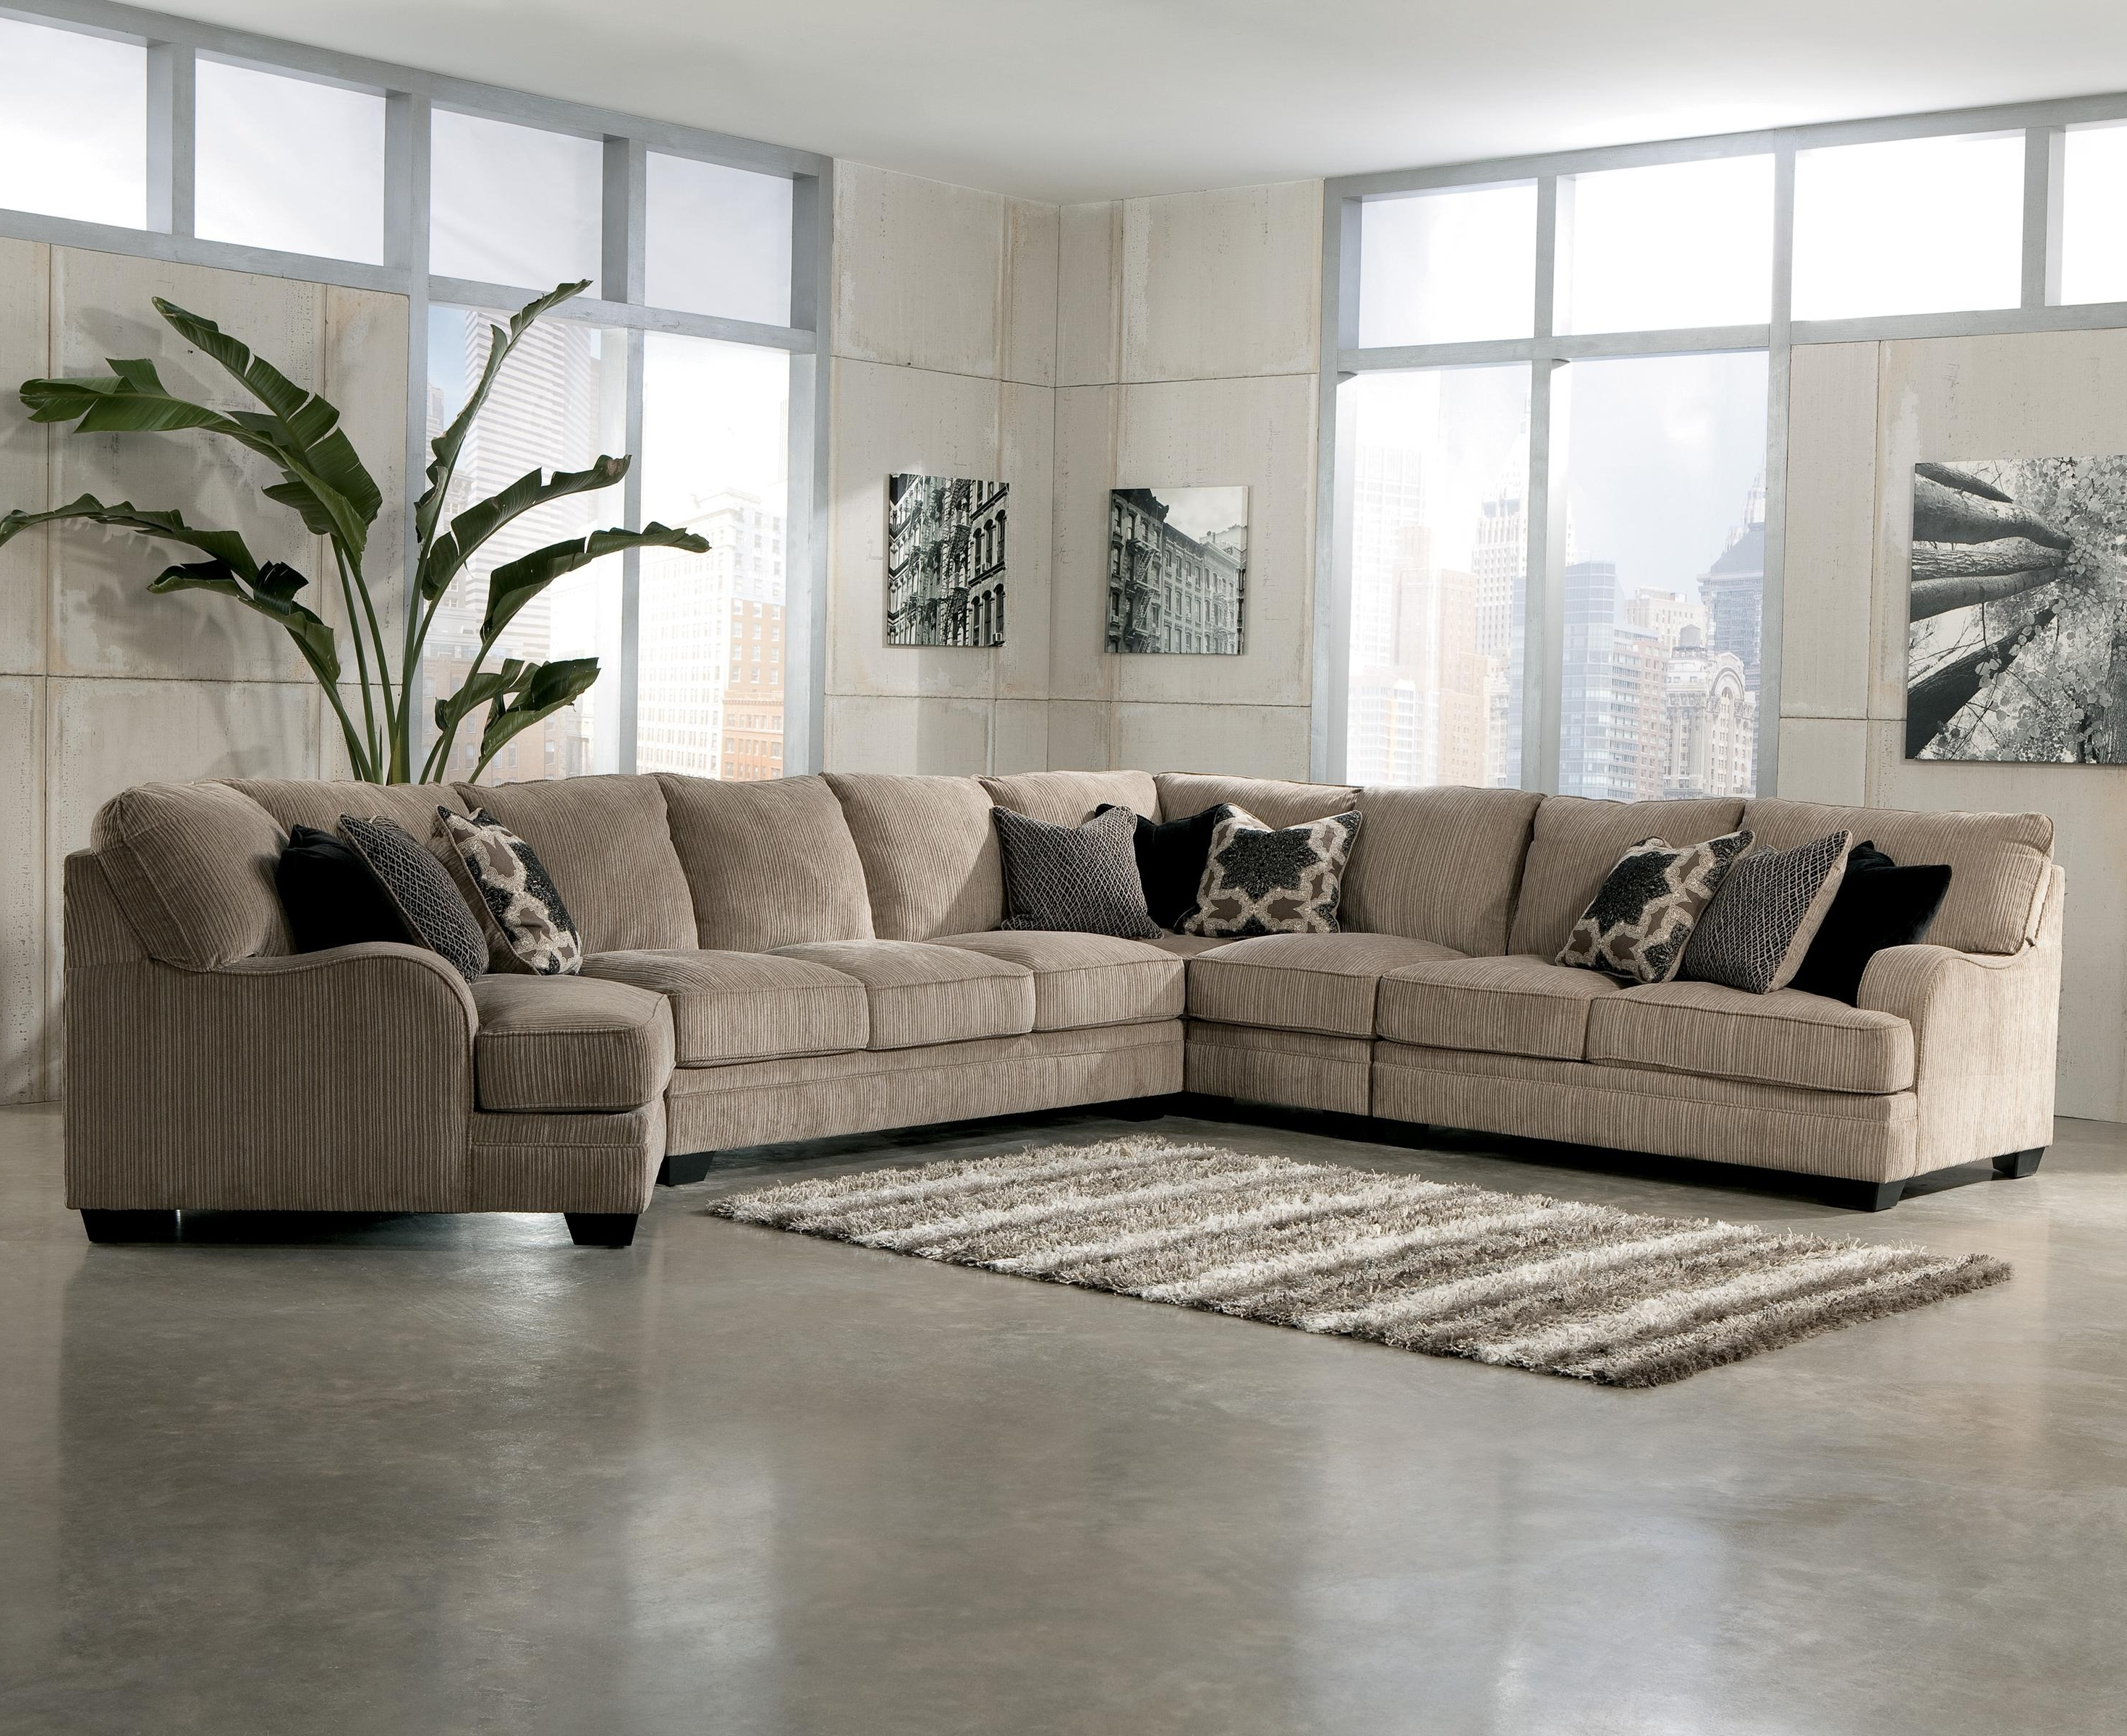 Signature Designashley Katisha – Platinum 5 Piece Sectional Pertaining To Widely Used Pittsburgh Sectional Sofas (View 2 of 20)